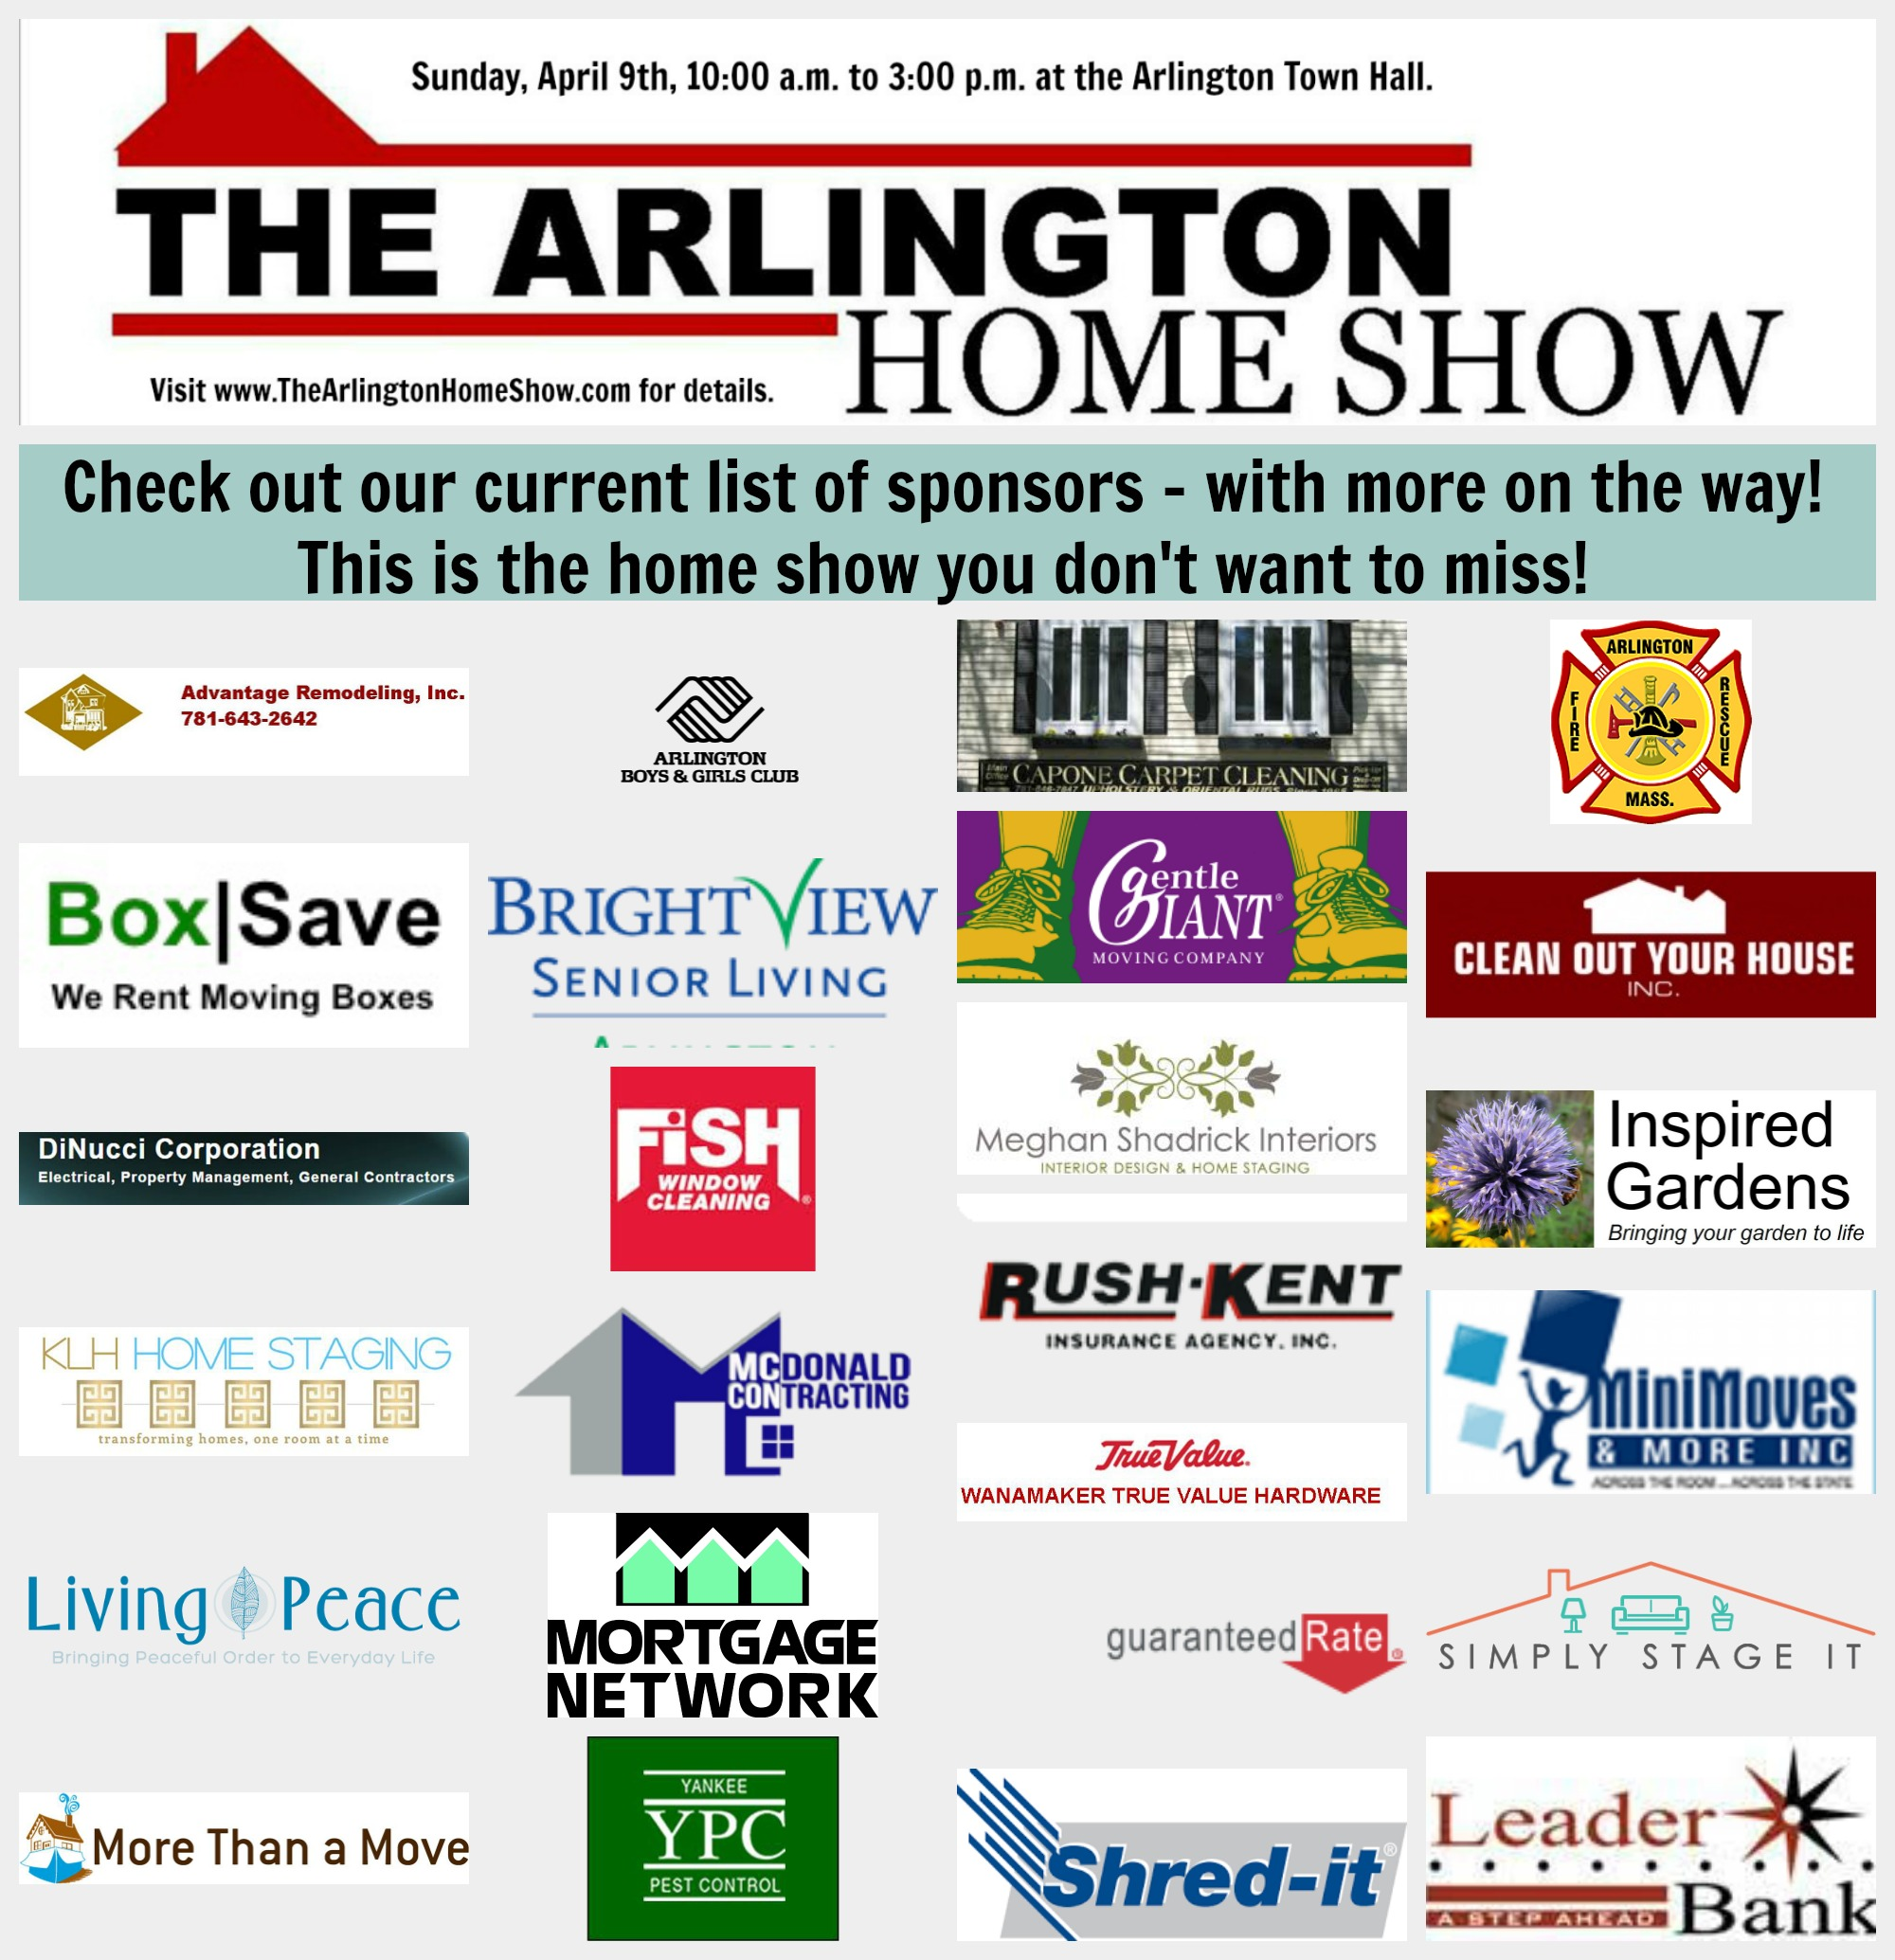 The Arlington Home Show Sponsor List